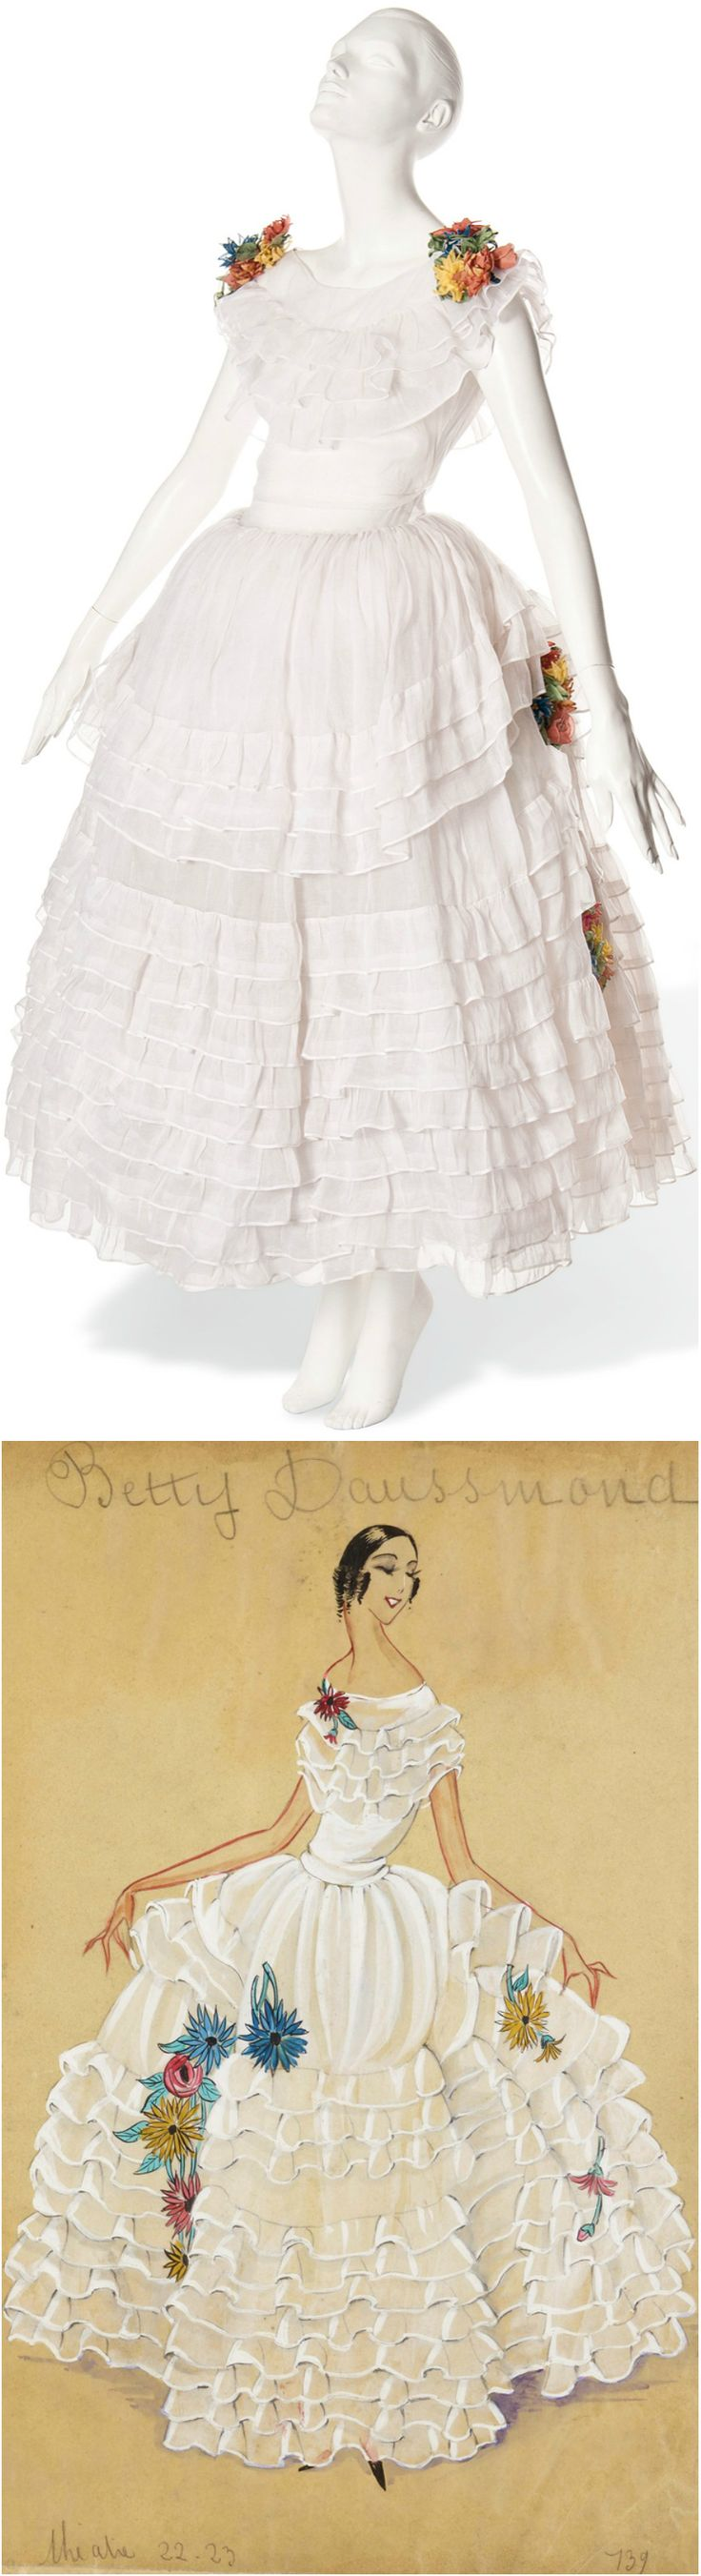 A JEANNE LANVIN ROBE DE STYLE OF WHITE ORGANZA, UNLABELLED, CIRCA 1922-3, sold by Christie's in November 2012. The dress with wide, panniered skirts and simple bodice trimmed with a posy of silk flowers. Illustrated here by a gouache from Lanvin's daybook for 1922-1923 courtesy of Archives Lanvin, inscribed with the name of 'Betty Daussemond', noted actress of the 1920s.